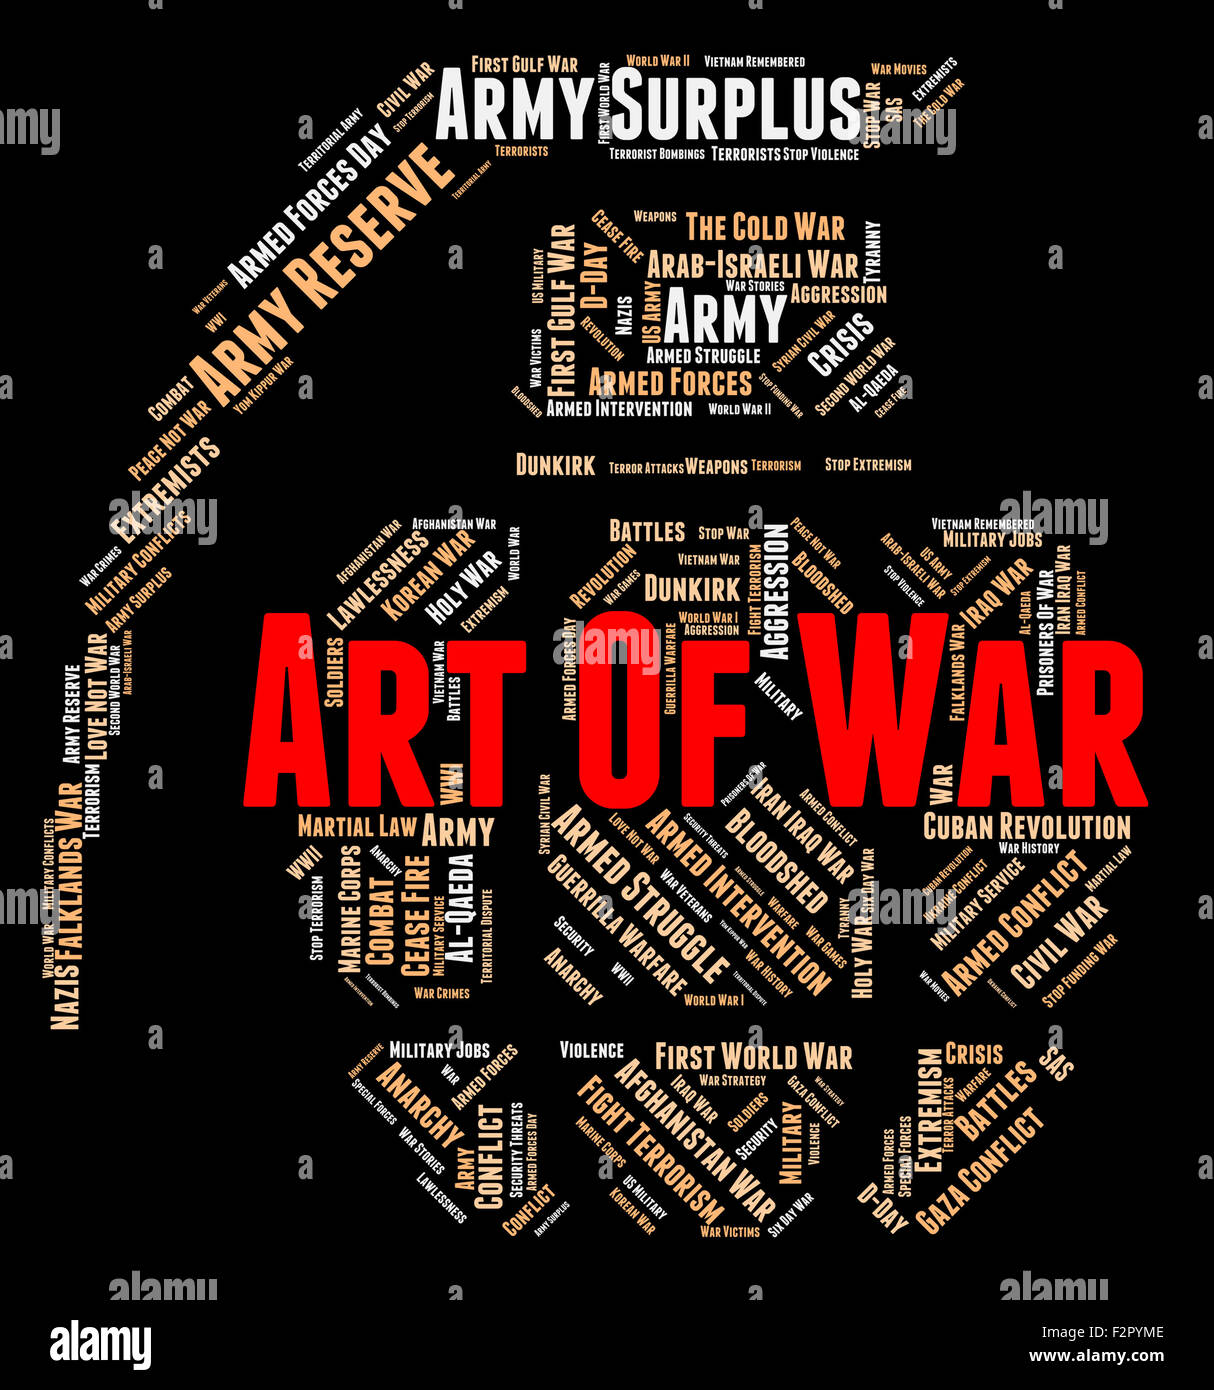 Art Of War Indicating Business Strategy And Planning Stock Photo Alamy